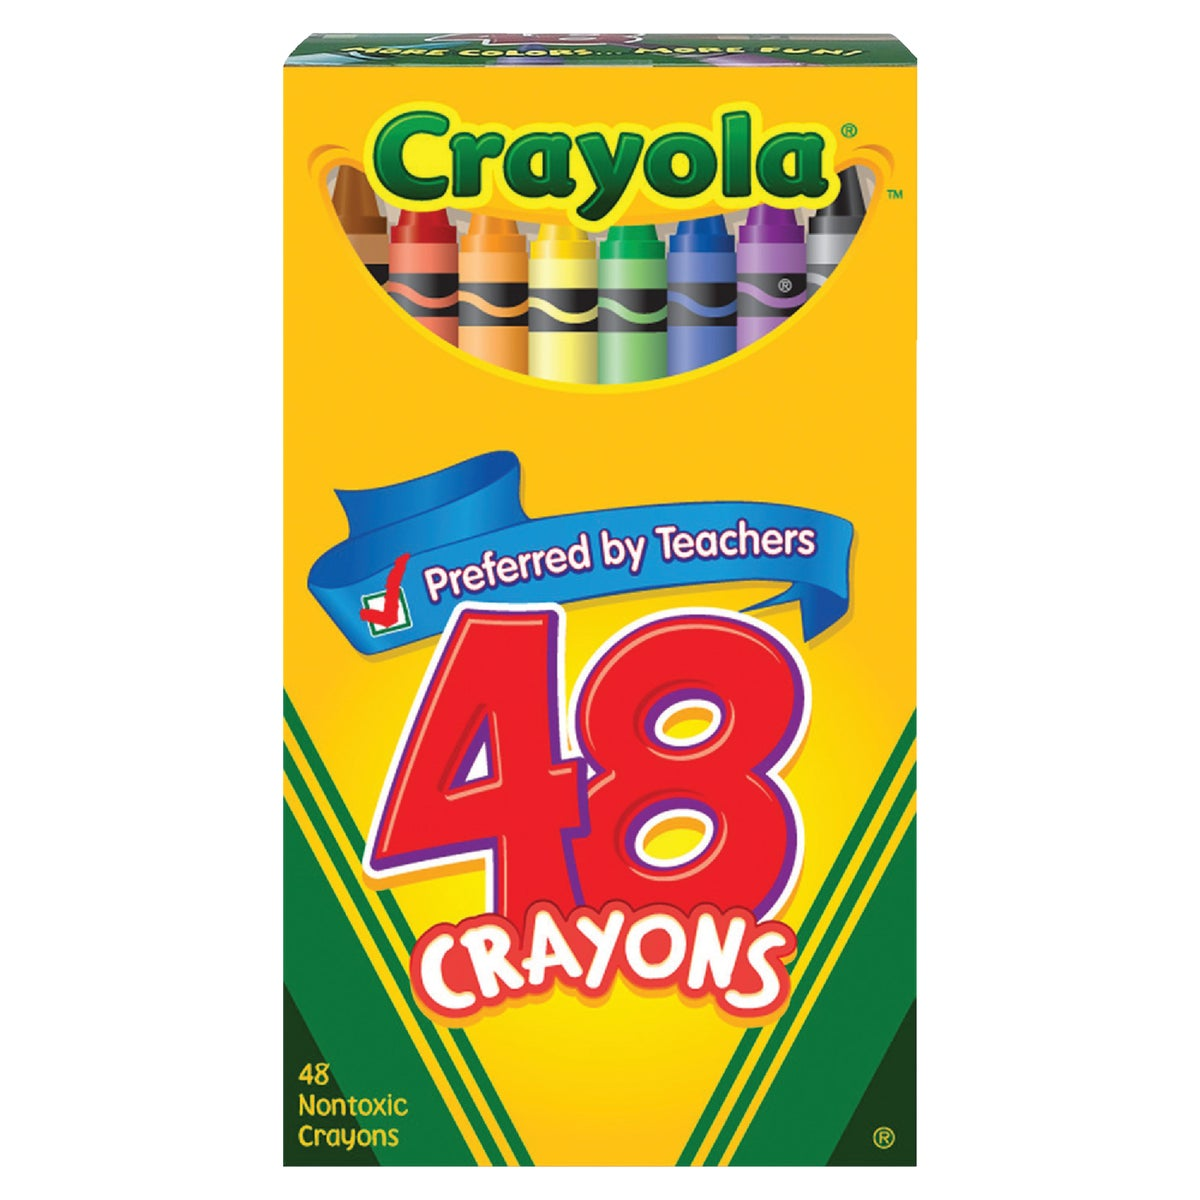 48CT CRAYONS - 52-0048 by Crayola L L C